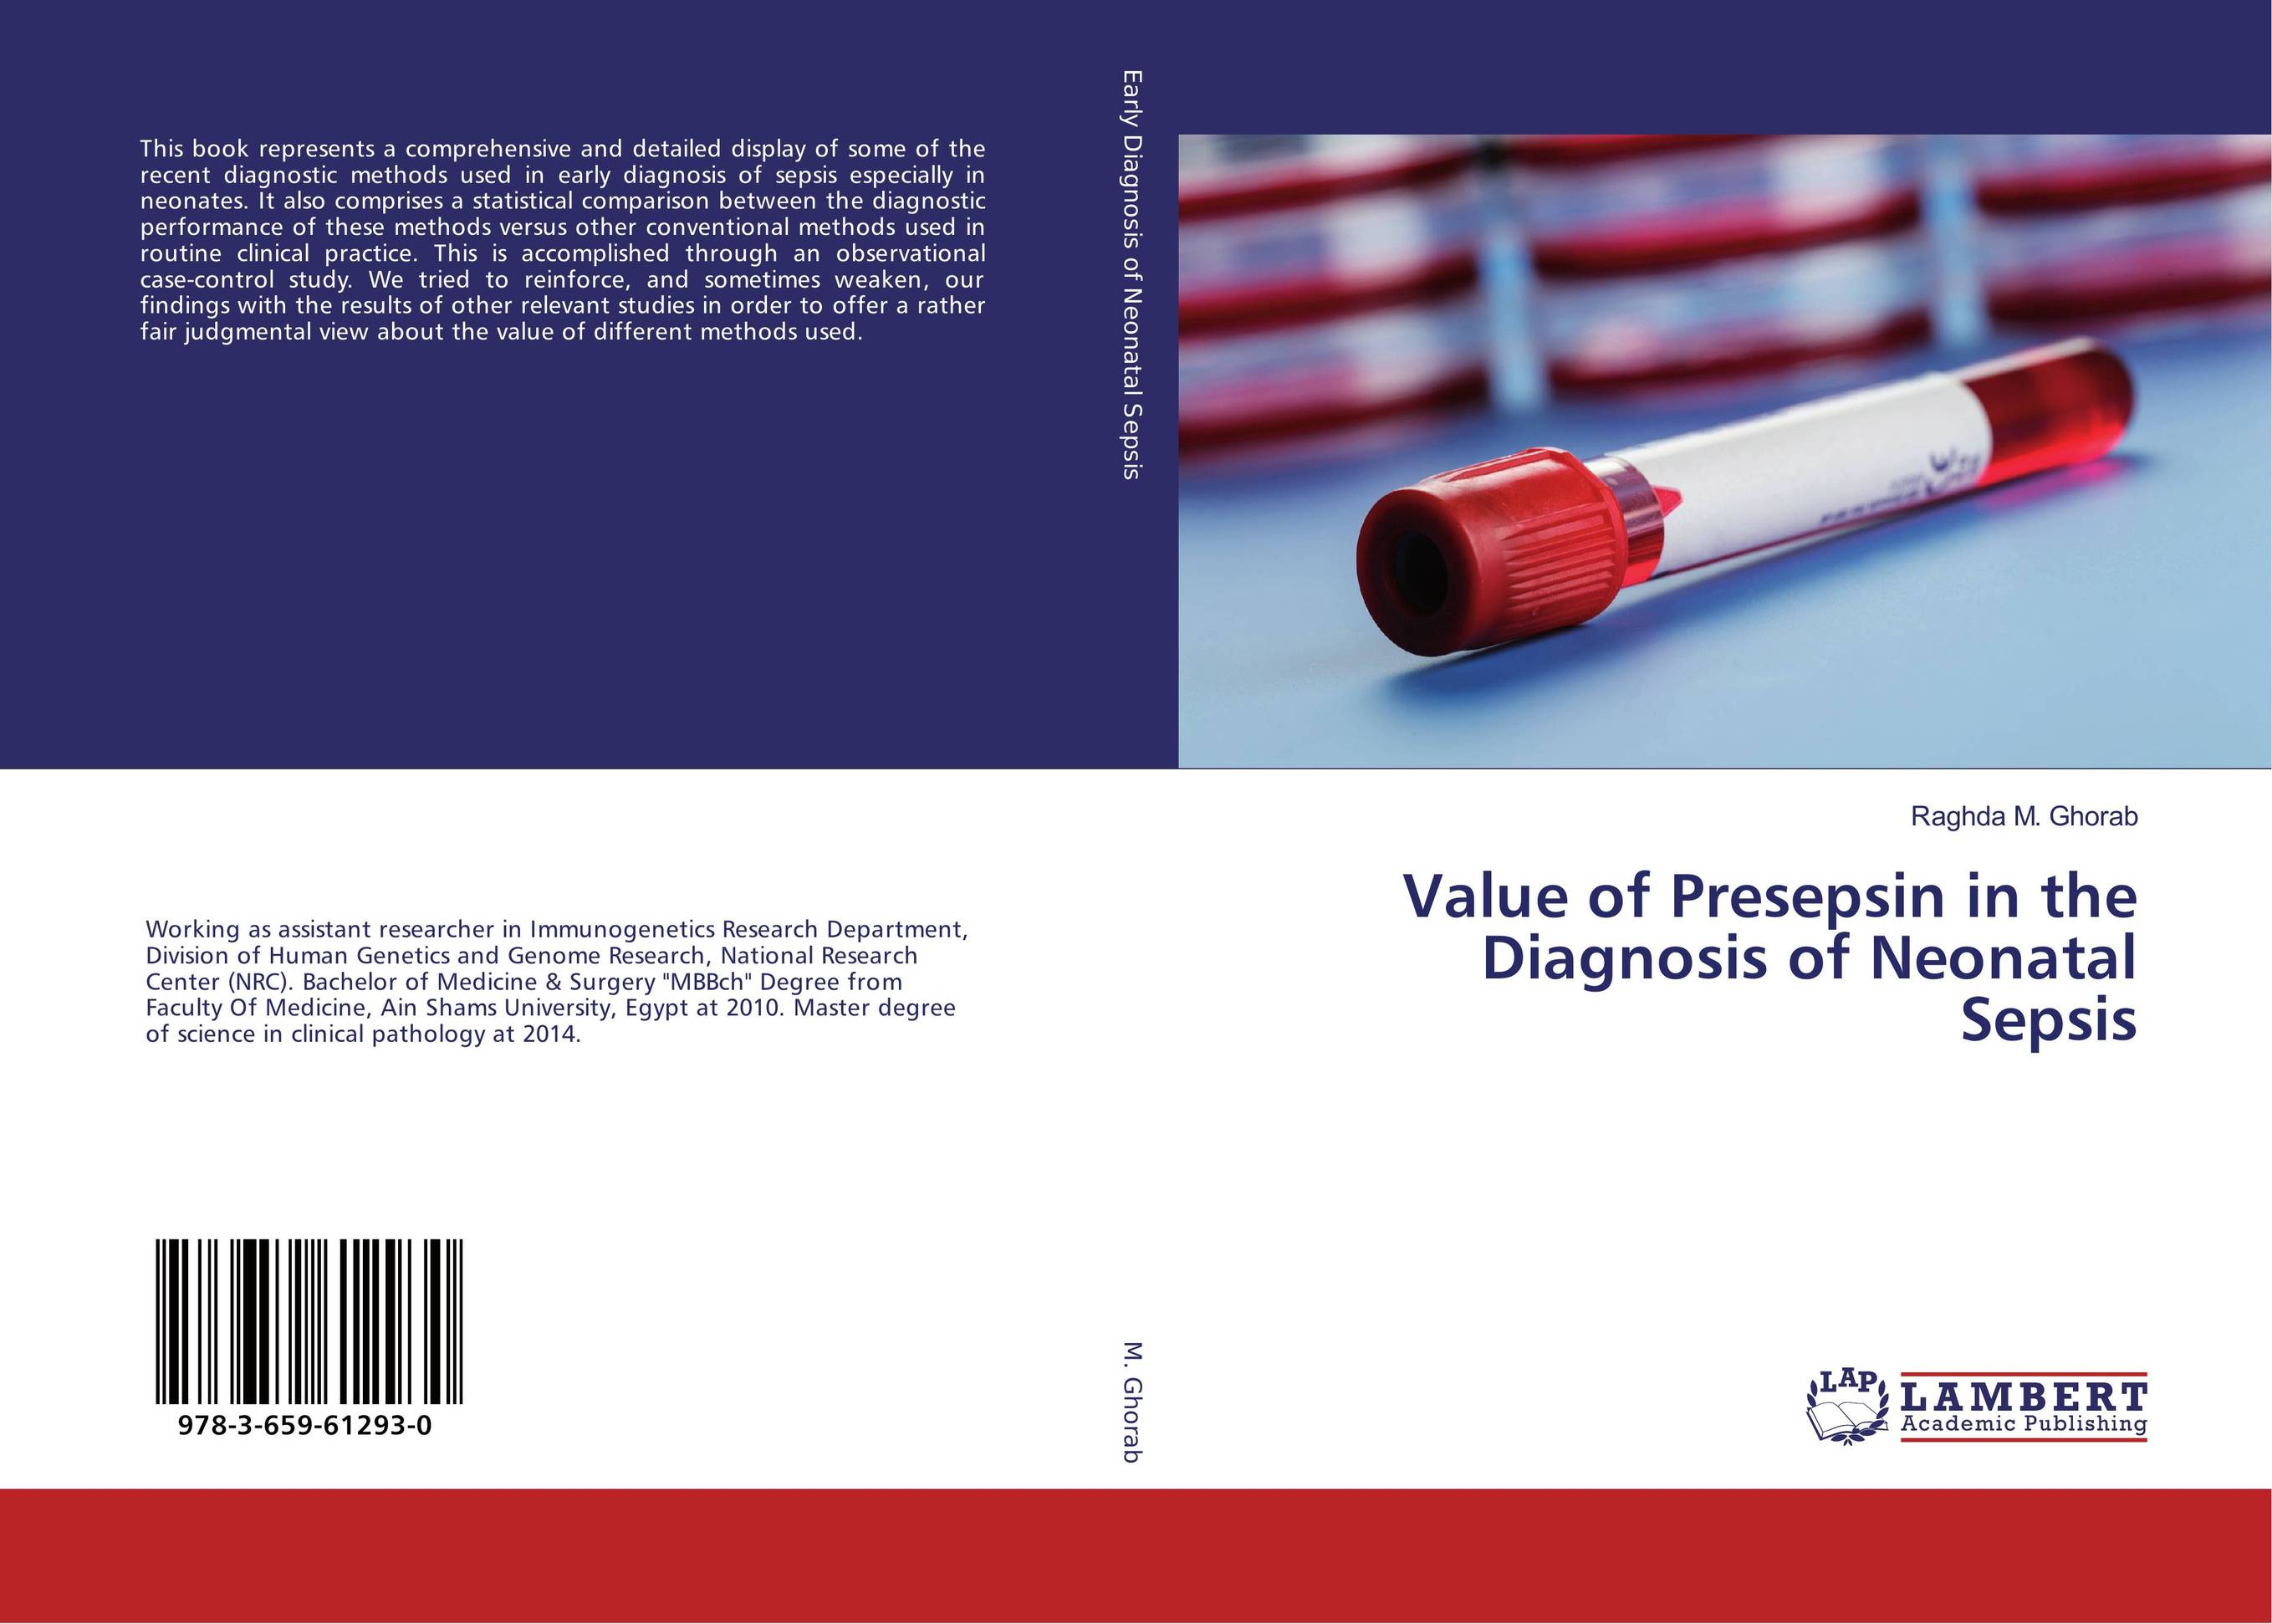 Value of Presepsin in the Diagnosis of Neonatal Sepsis molecular methods in diagnostic pathology